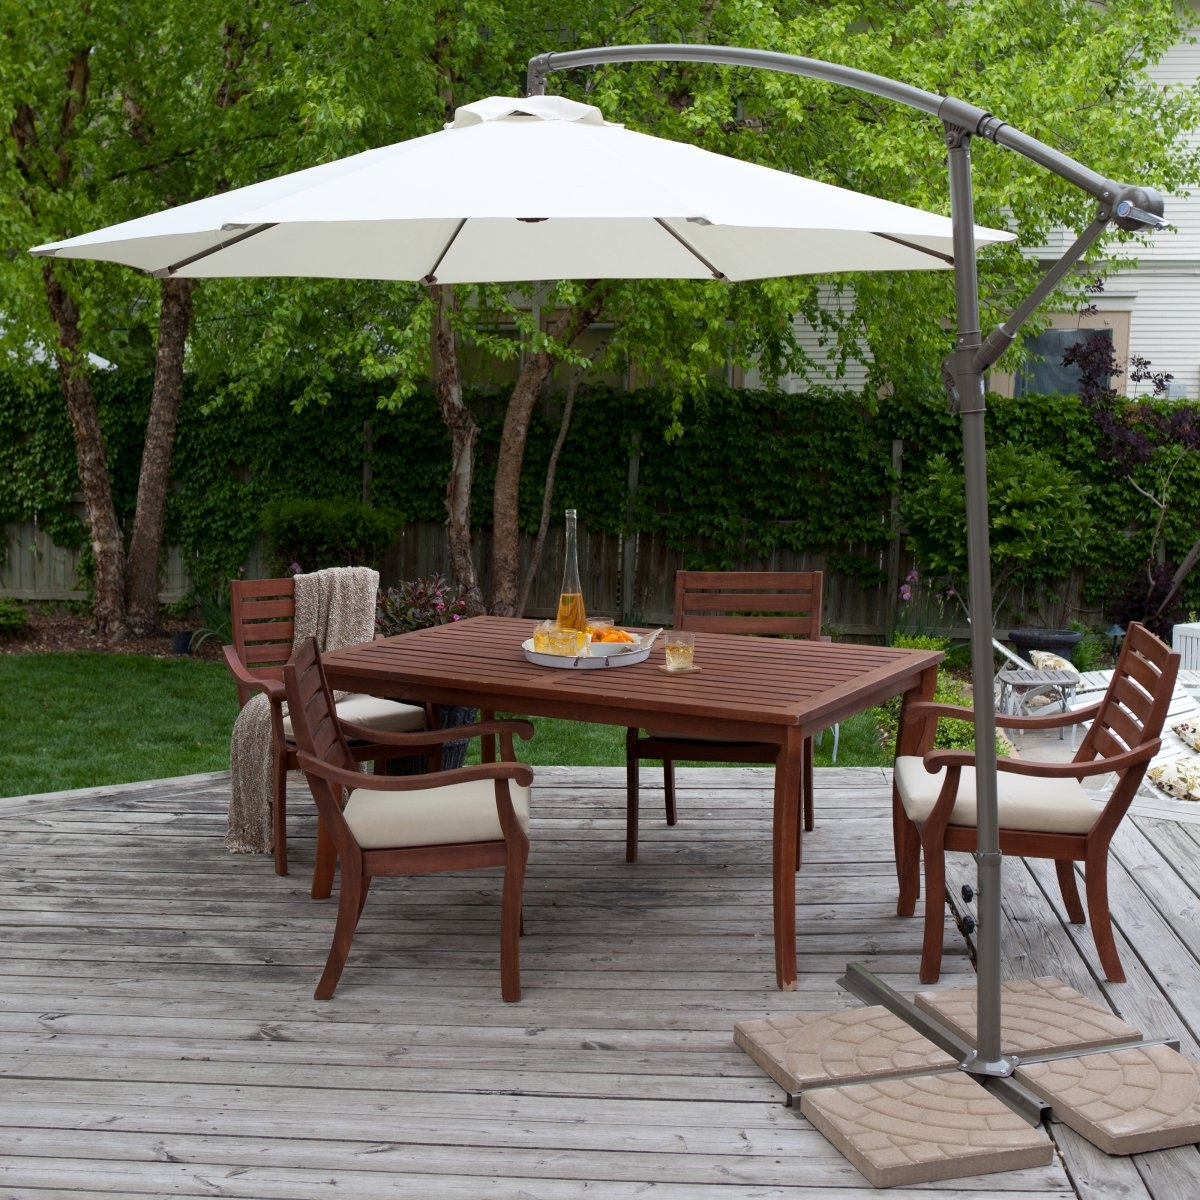 Inspirations: Offset Umbrella Clearance For Appealing Patio Pertaining To Current Patio Deck Umbrellas (View 4 of 20)